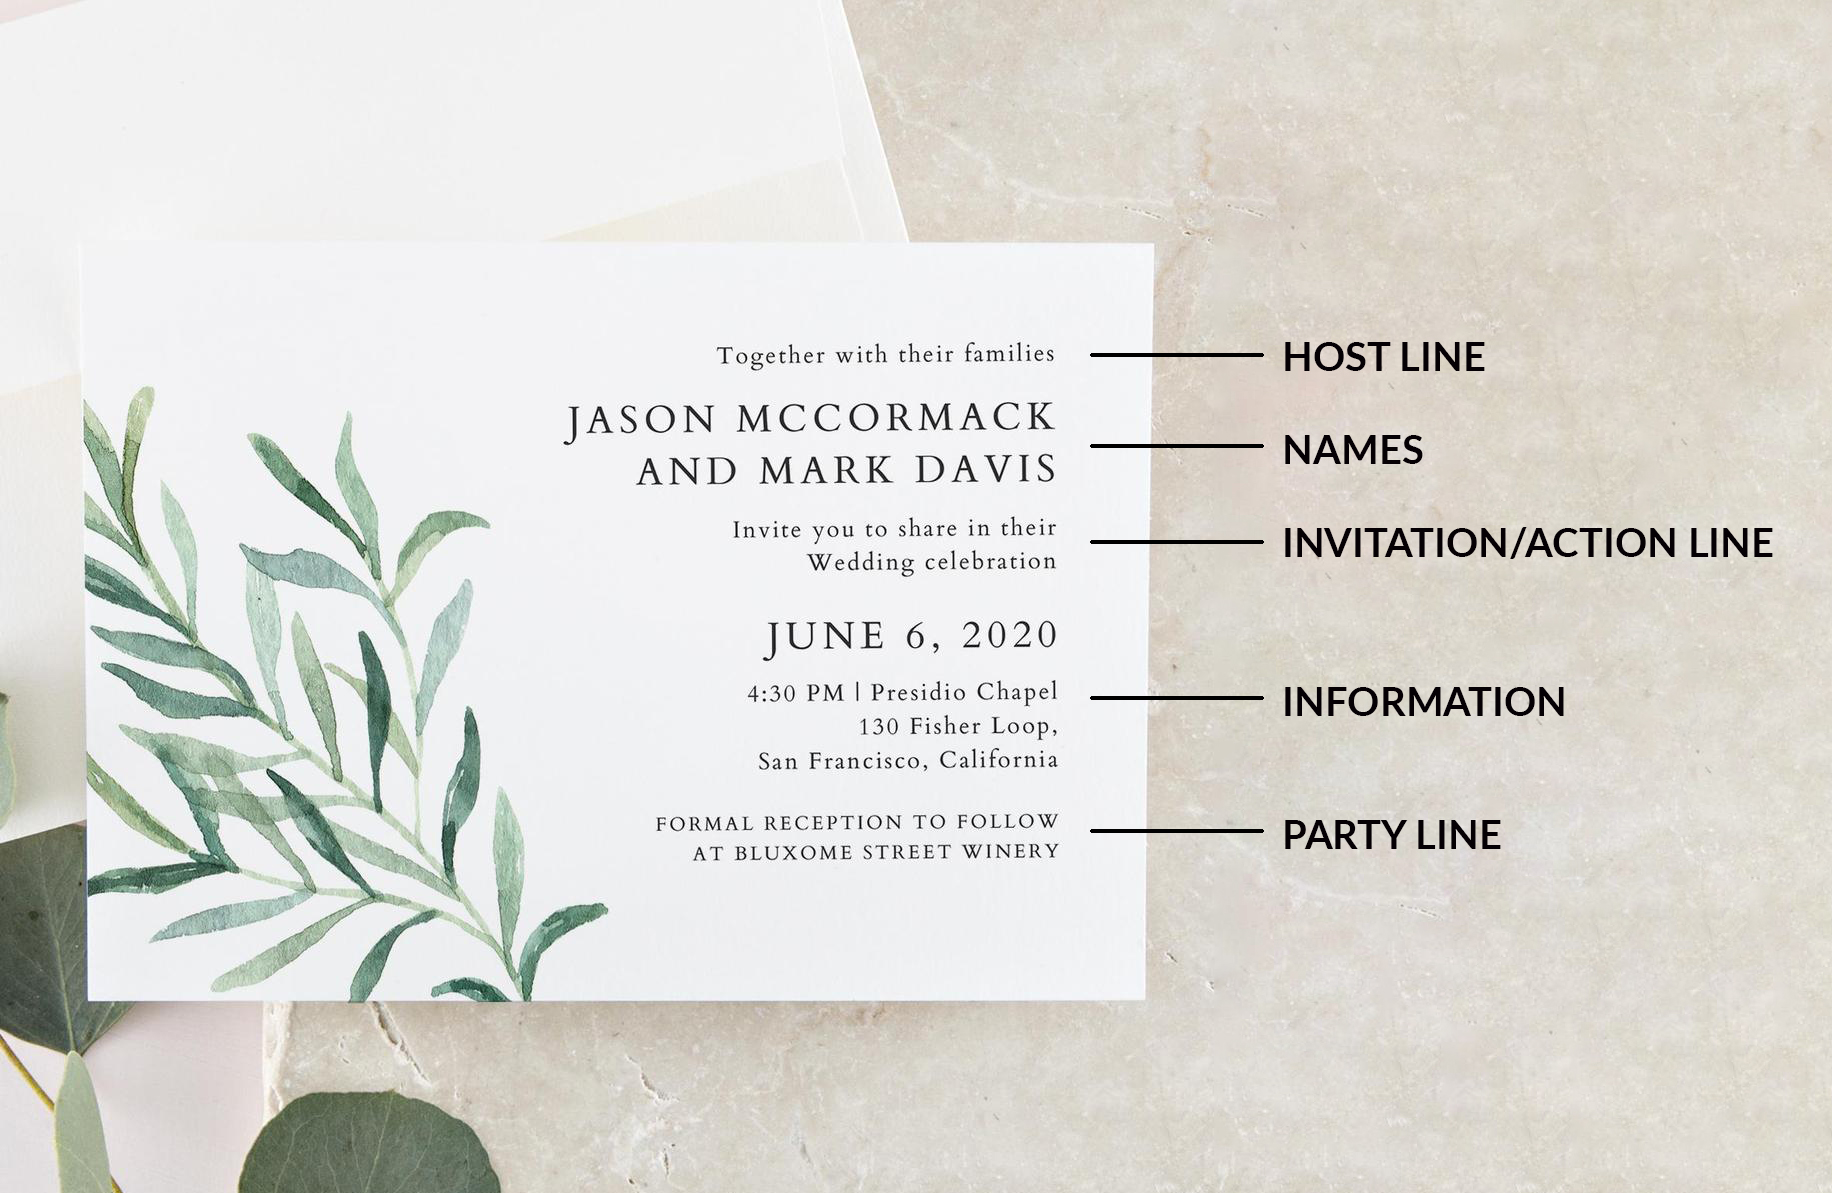 How To Write Invitation For Wedding: Wedding Invitation Wording Examples In Every Style